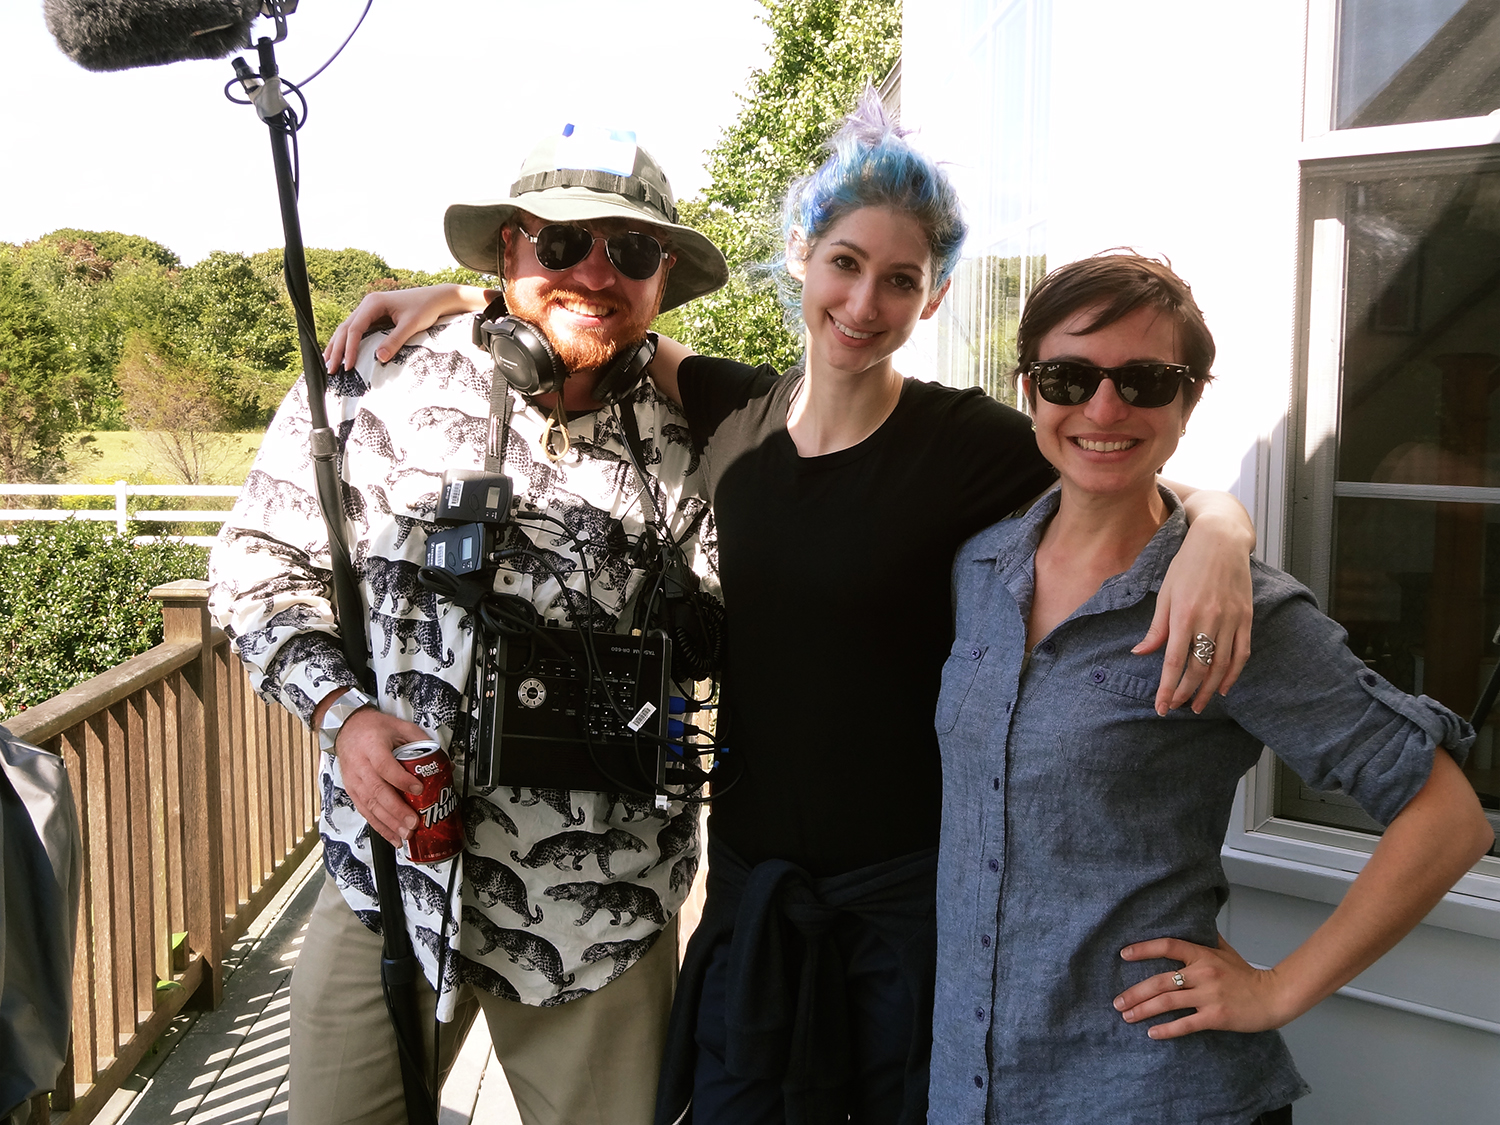 Joe Cooke of Angler Audio, Geena Matuson (@geenamatuson) and Madeleine Wisecup on set, 2014.